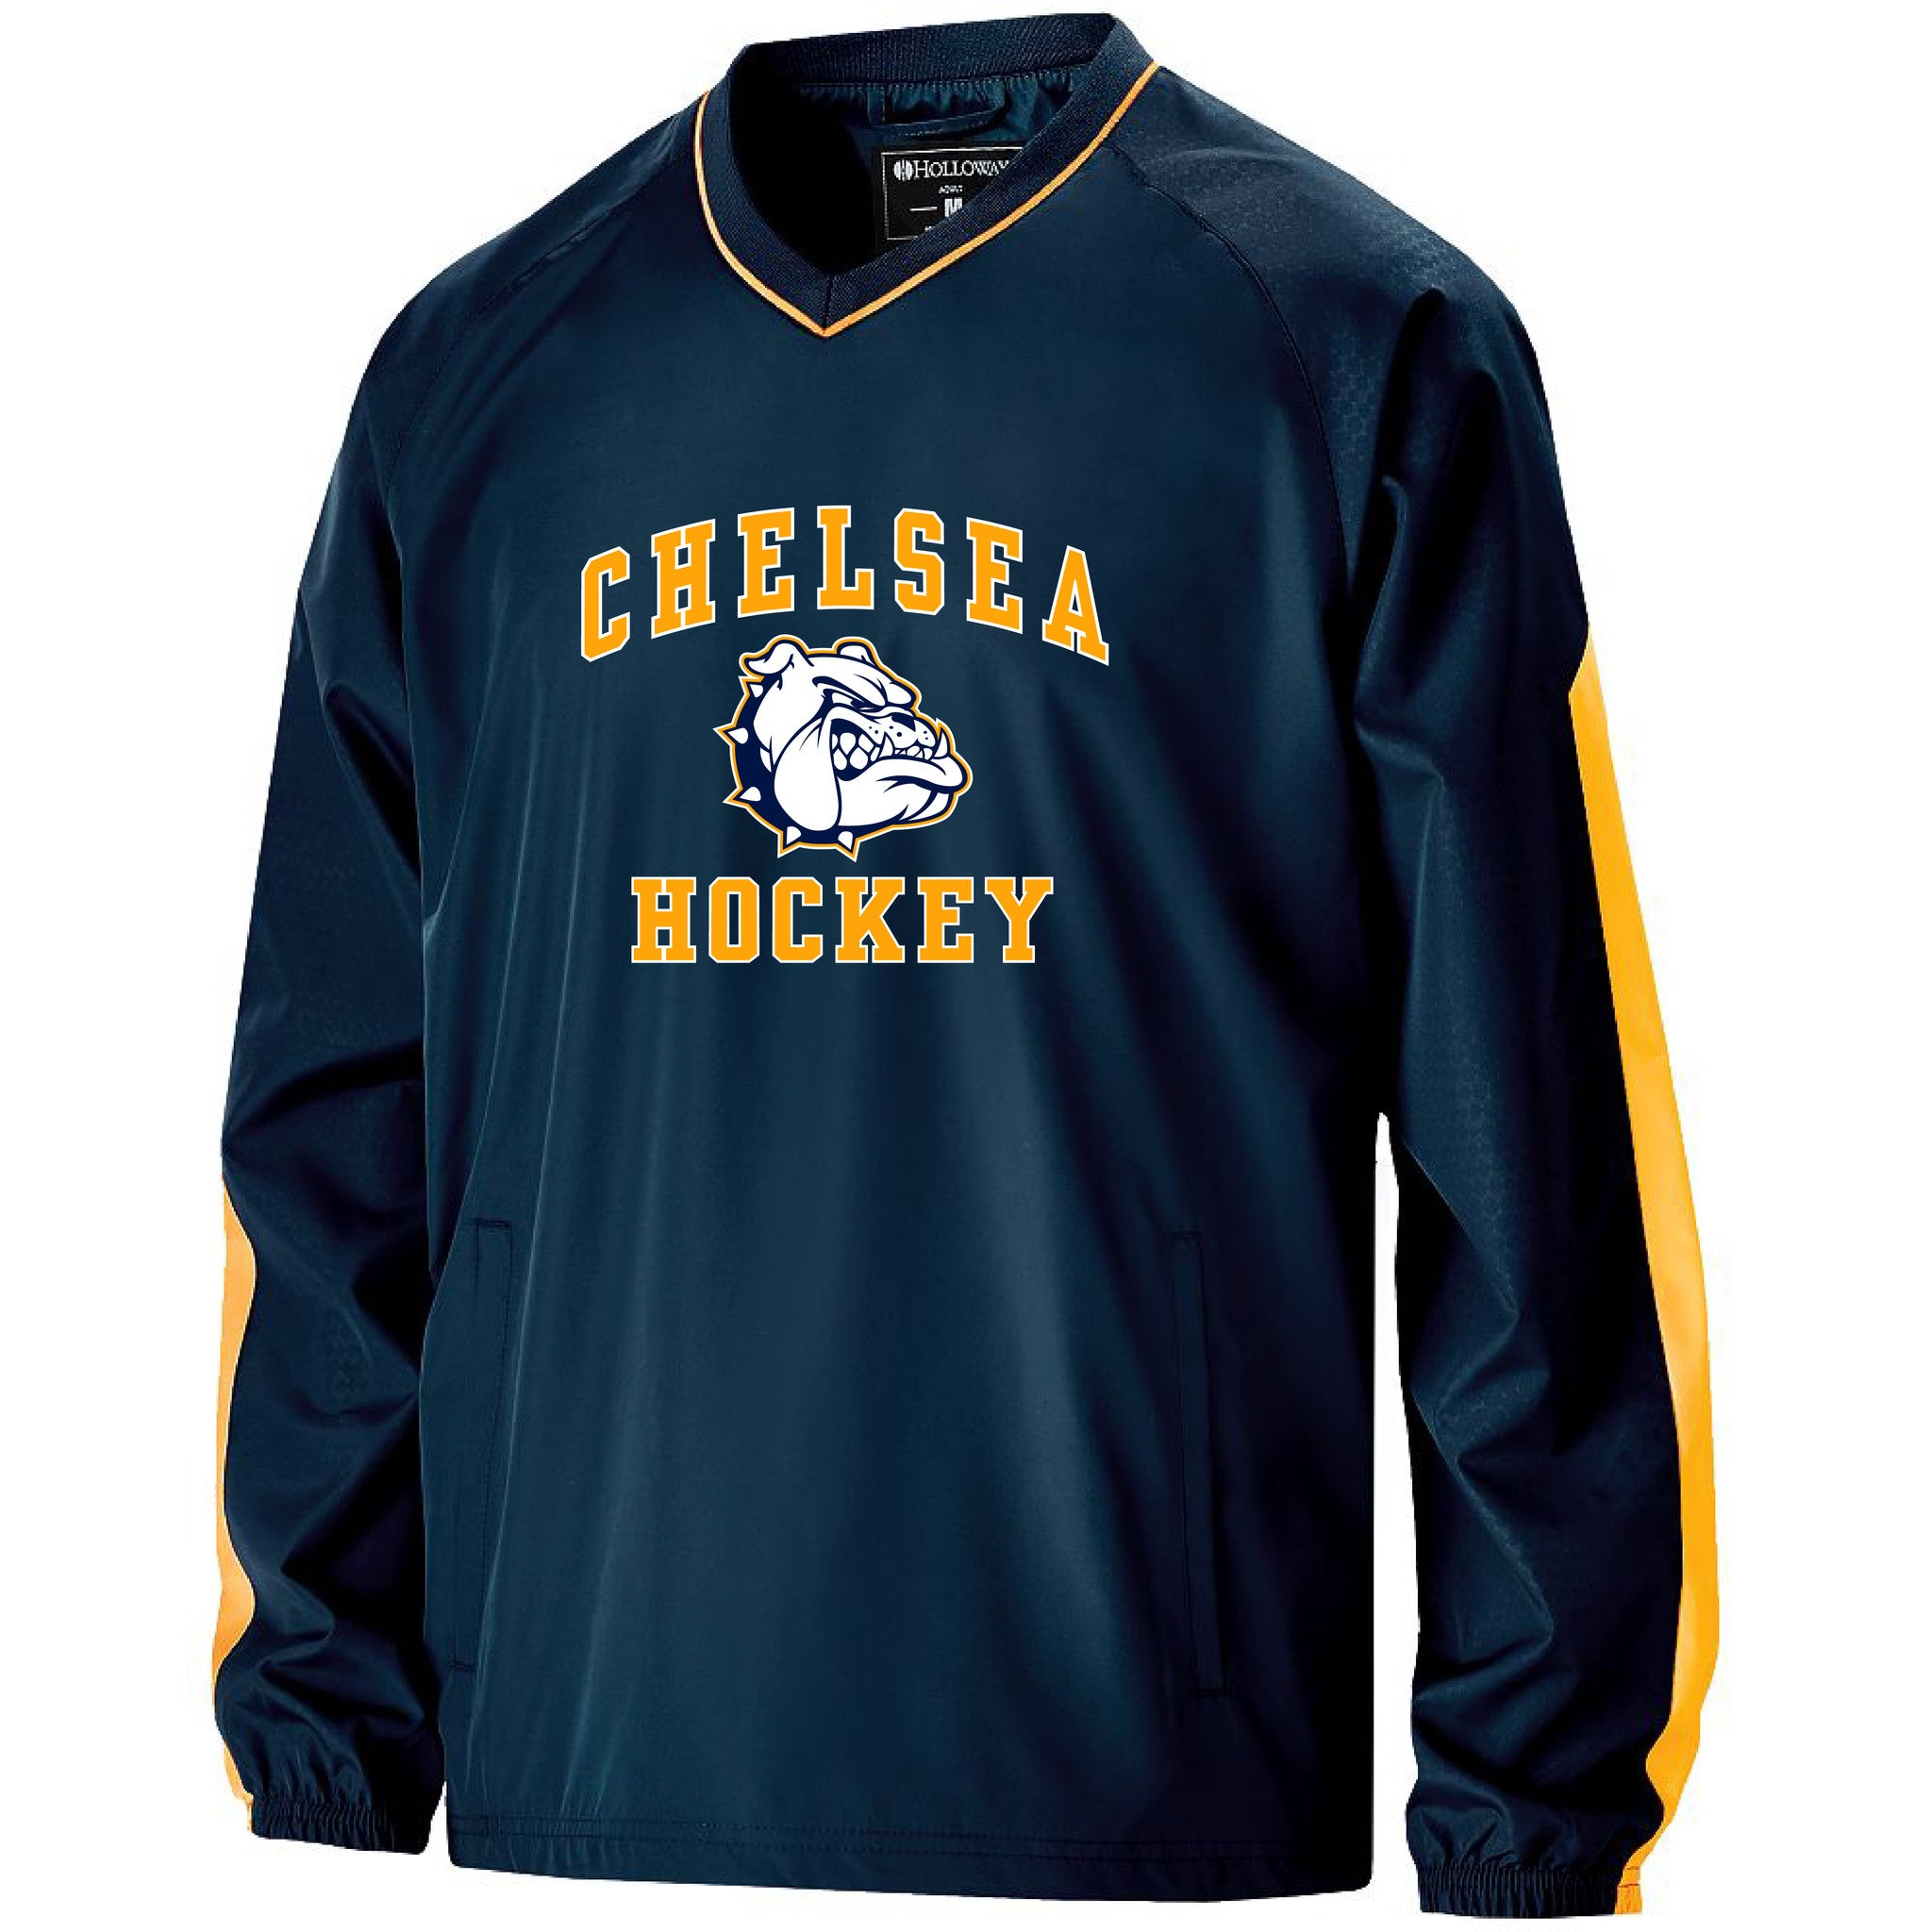 Youth Chelsea Hockey Bionic Pullover